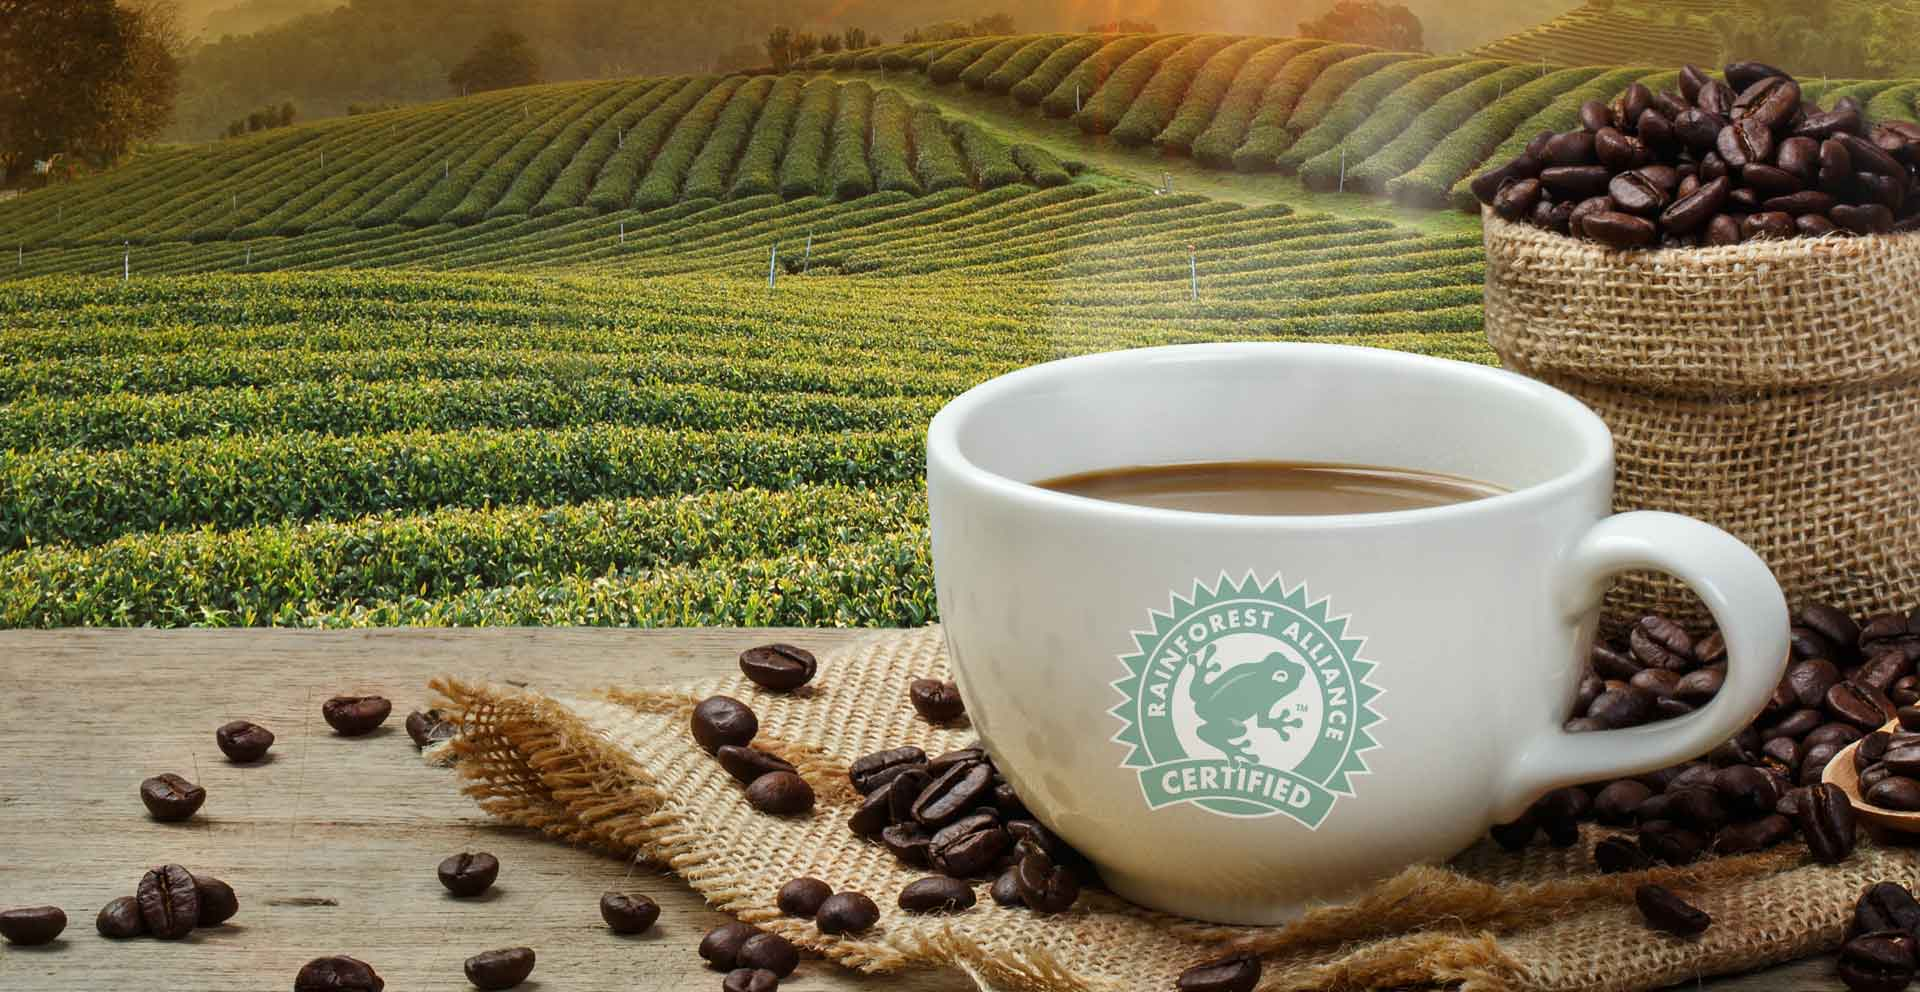 Serving an incredible cup of Premium Rainforest Alliance Certified Coffee. Better for you, better